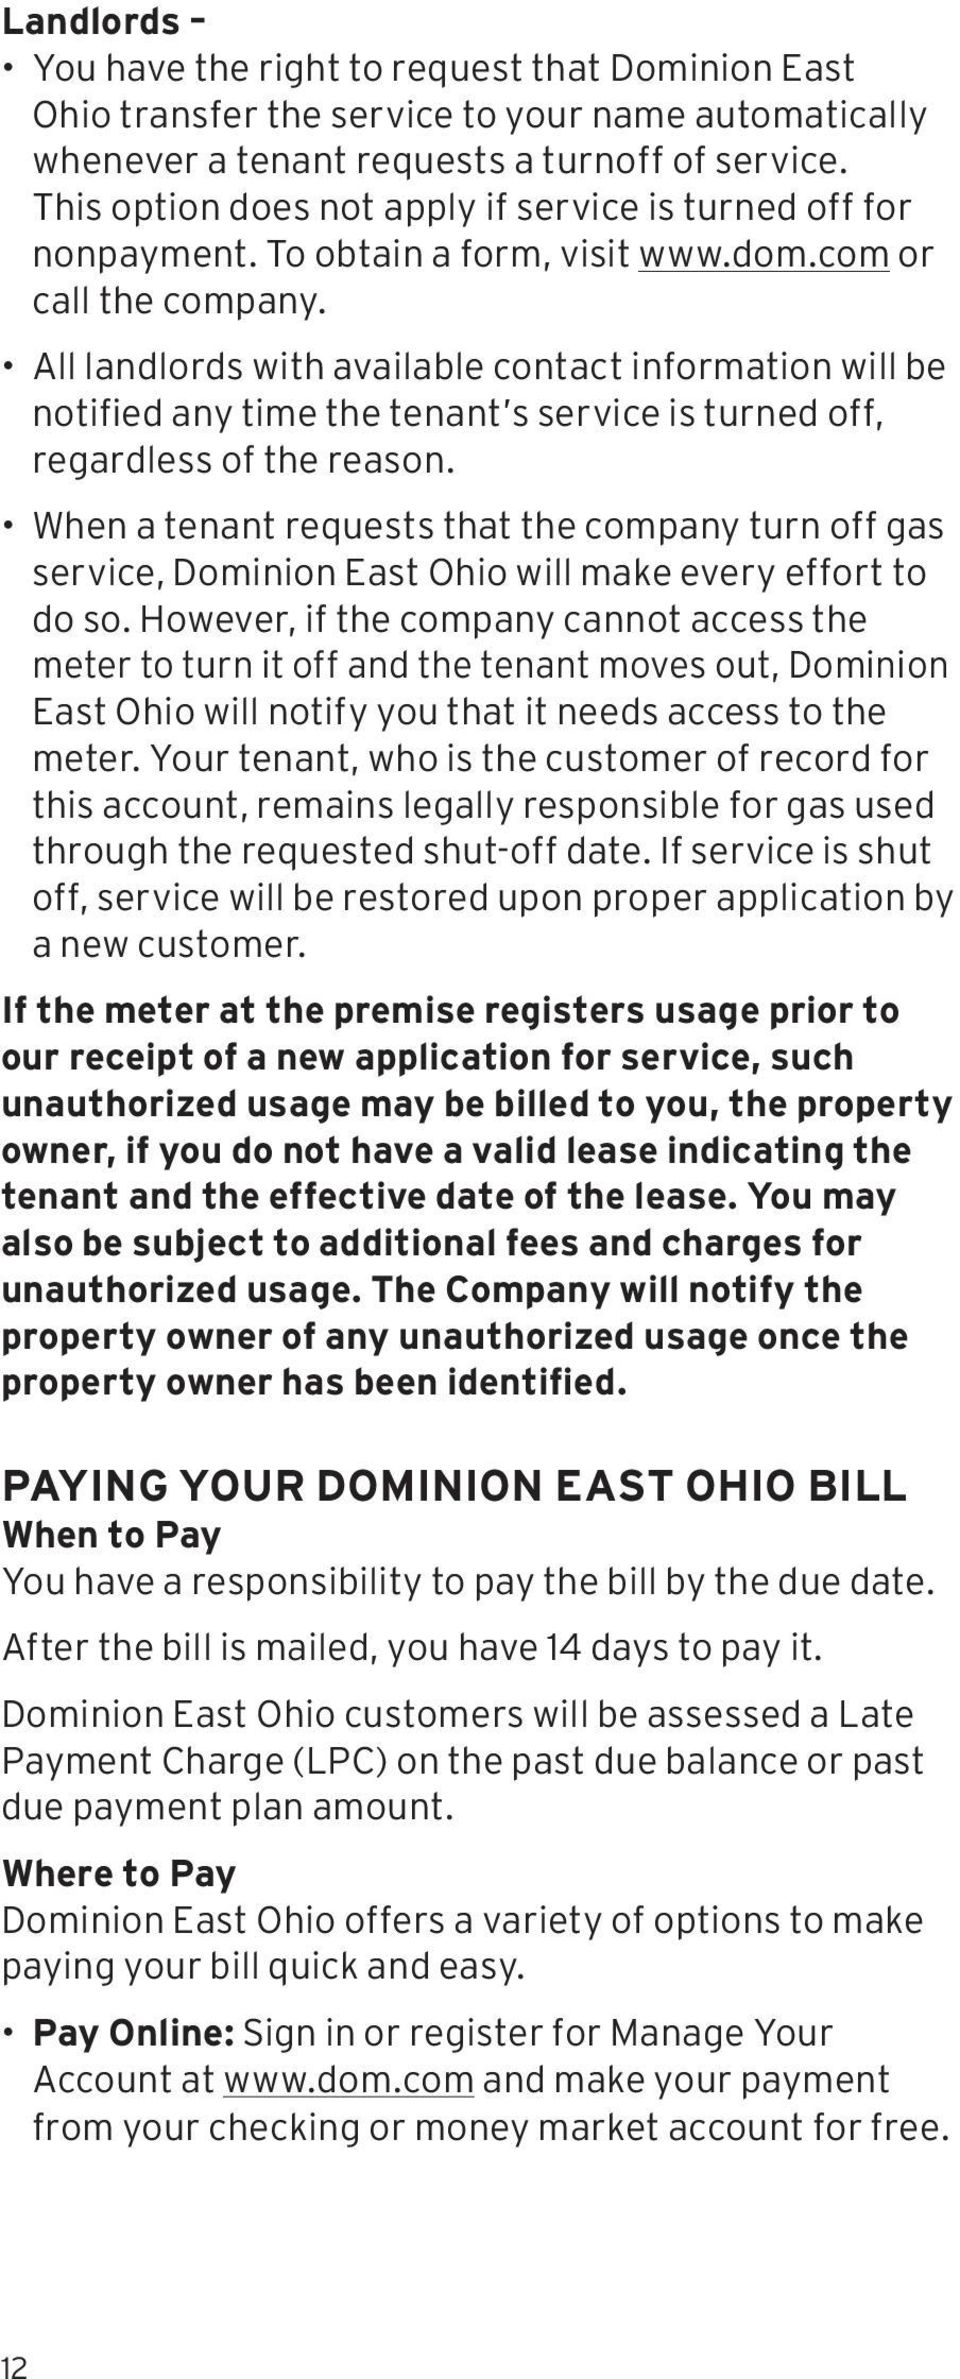 Your Rights & Responsibilities as a Dominion East Ohio